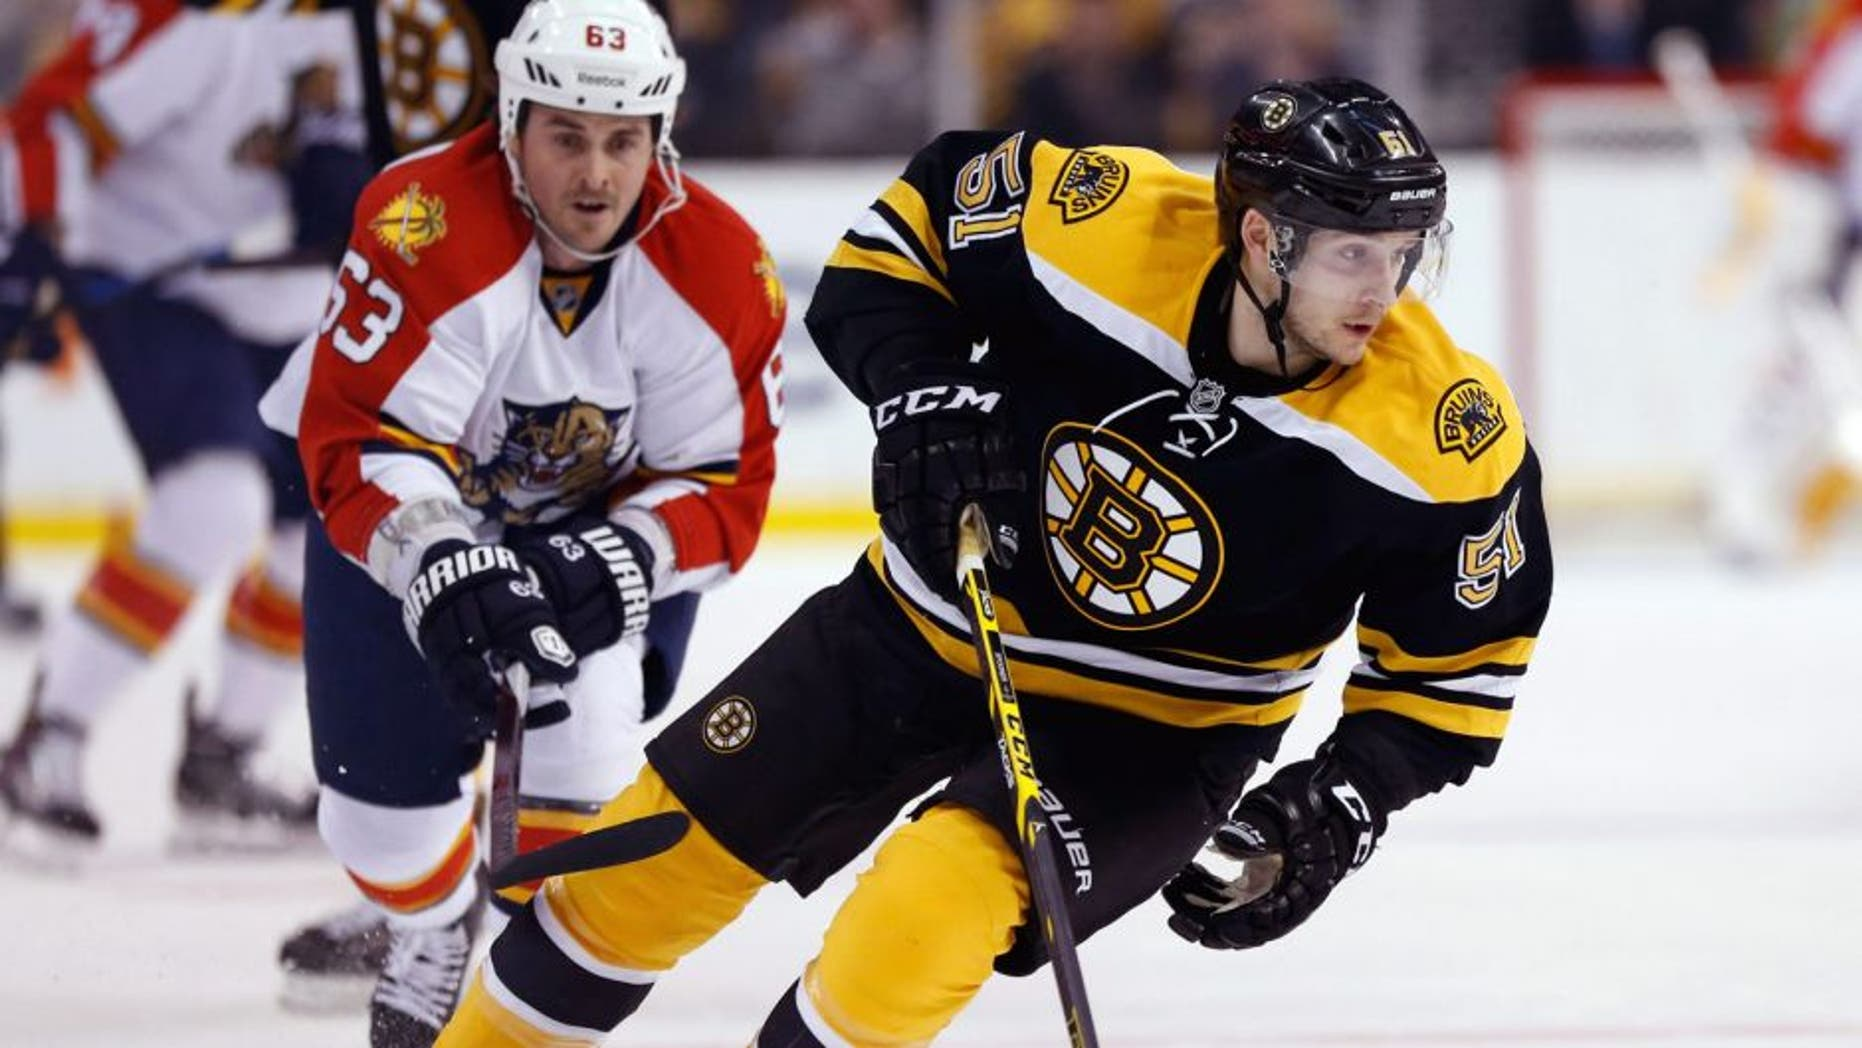 Mar 31, 2015; Boston, MA, USA; Boston Bruins center Ryan Spooner (51) keeps the puck away from Florida Panthers center Dave Bolland (63) during the first period at TD Banknorth Garden. Mandatory Credit: Greg M. Cooper-USA TODAY Sports